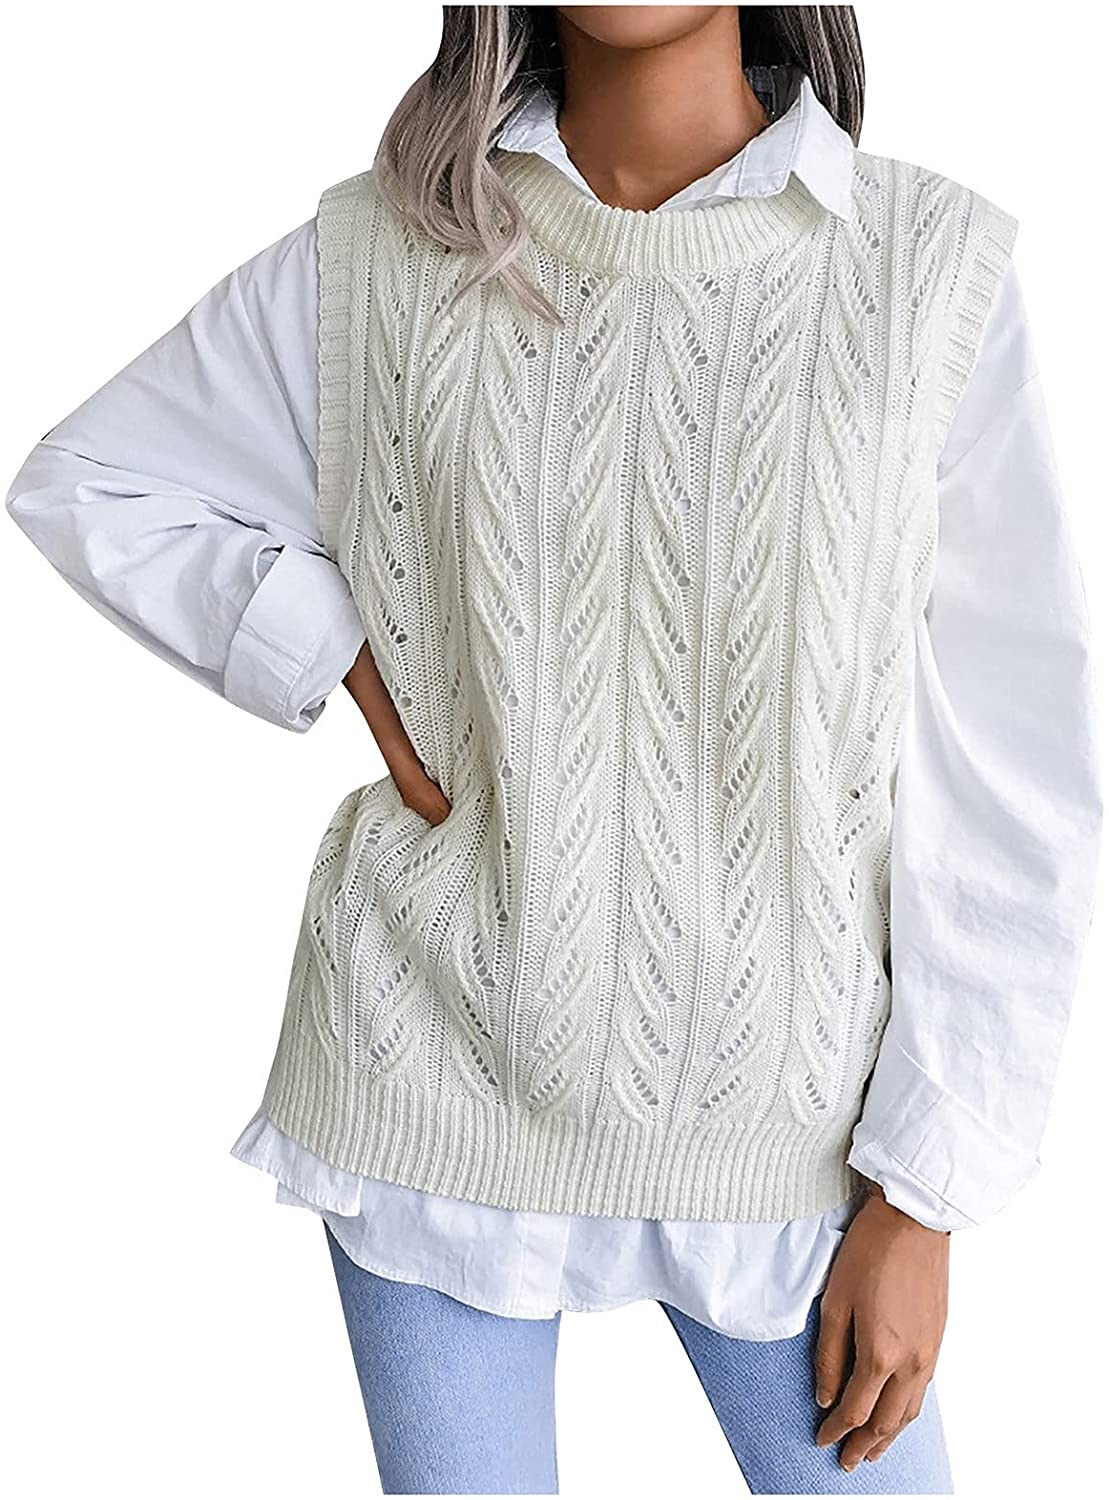 Tops for Women Casual Loose Knit Vest Fashion Women's Hollow Leaf V-neck Sweater